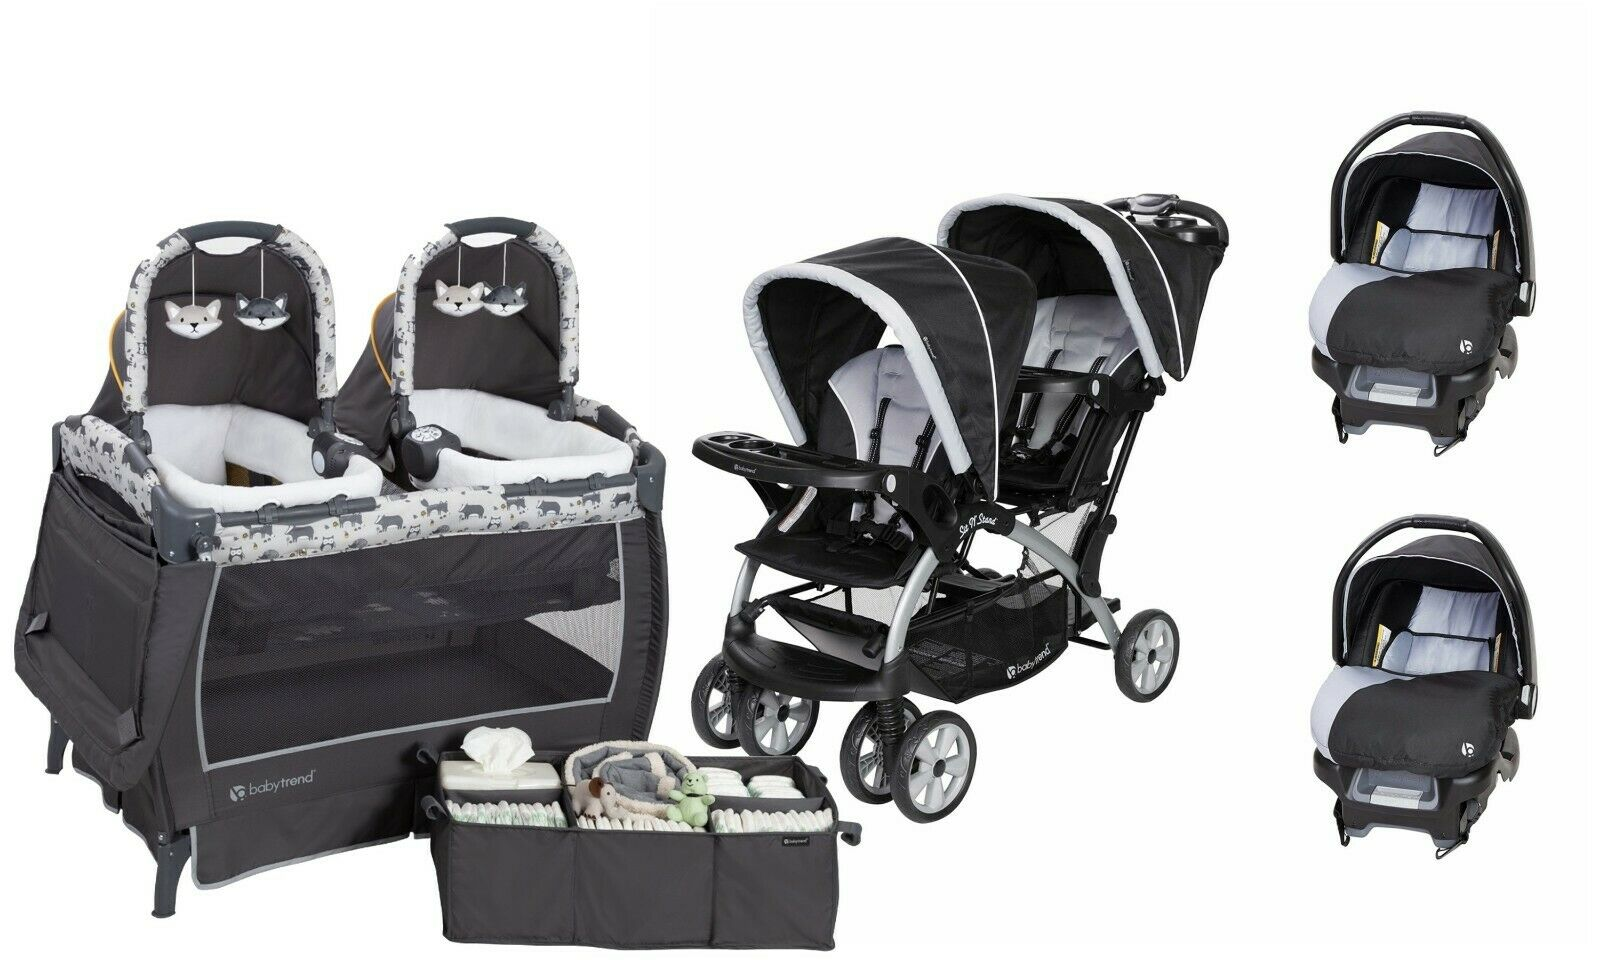 Twin Stroller And Carseat Double Baby Stroller With Baby Trend Infant Car Seat Twins Playard Travel System